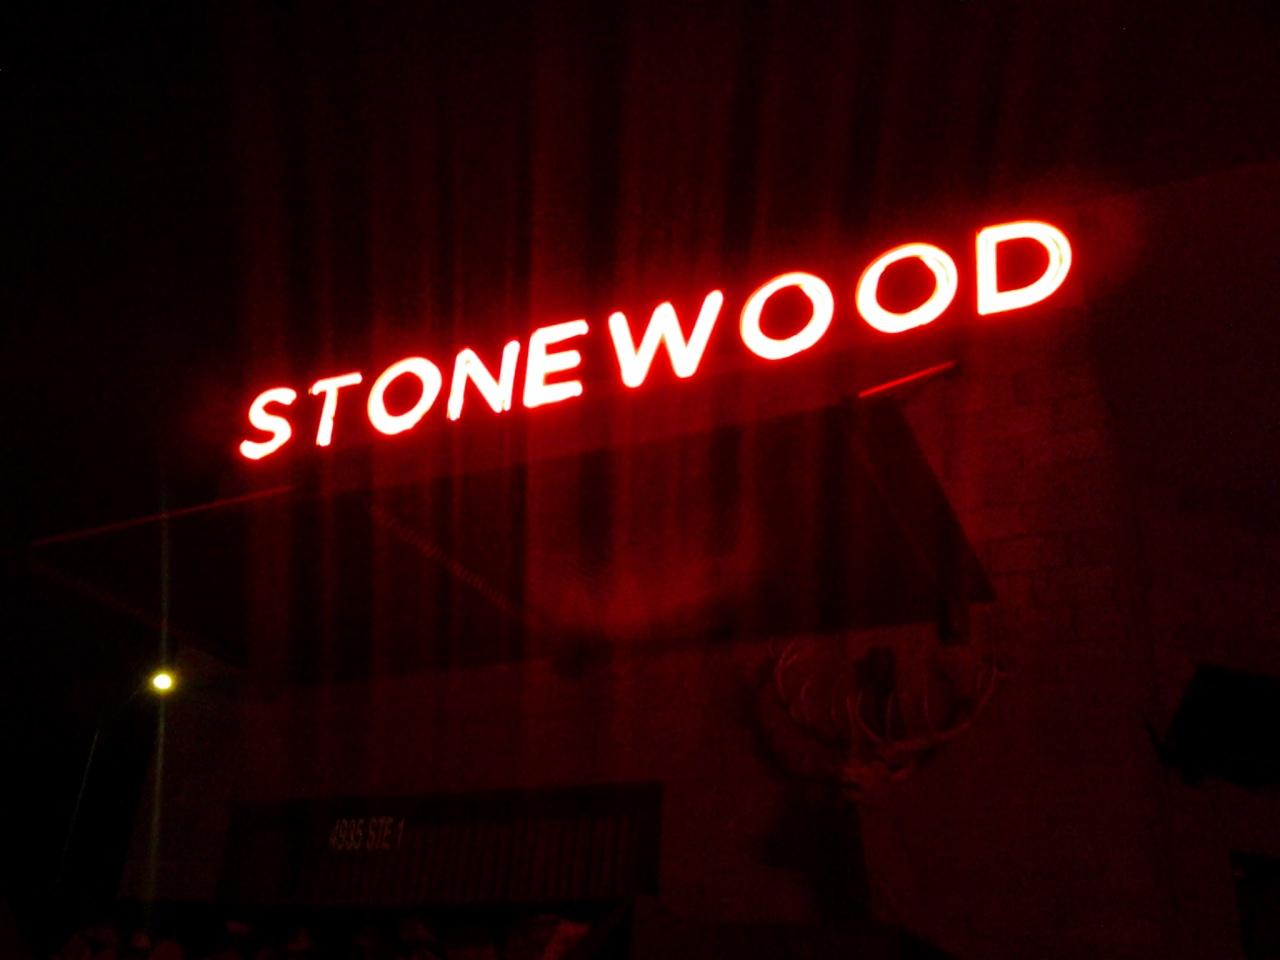 Stonewood. a  nice restaurant with a  spacious upstairs room for private events.  Inside